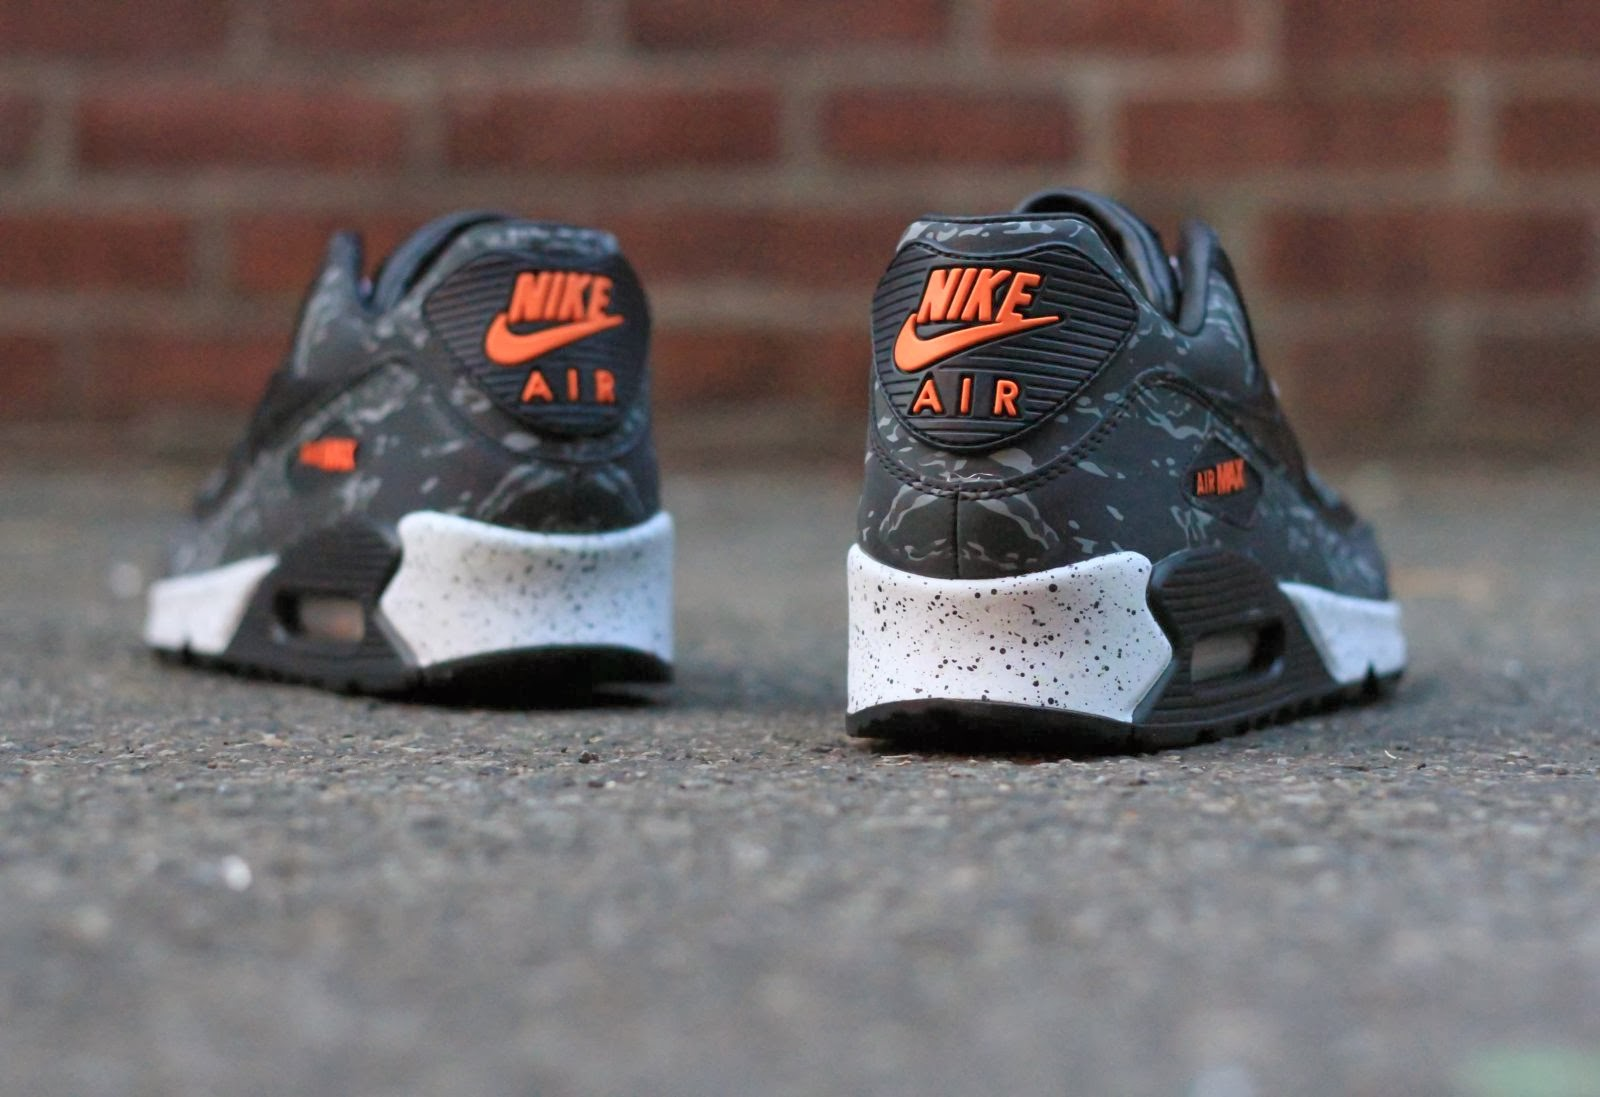 e243fecb9a VIA: A handful of US retailers will be blessed with the atmos x Nike Air Max  90 Premium Camo pack, including the